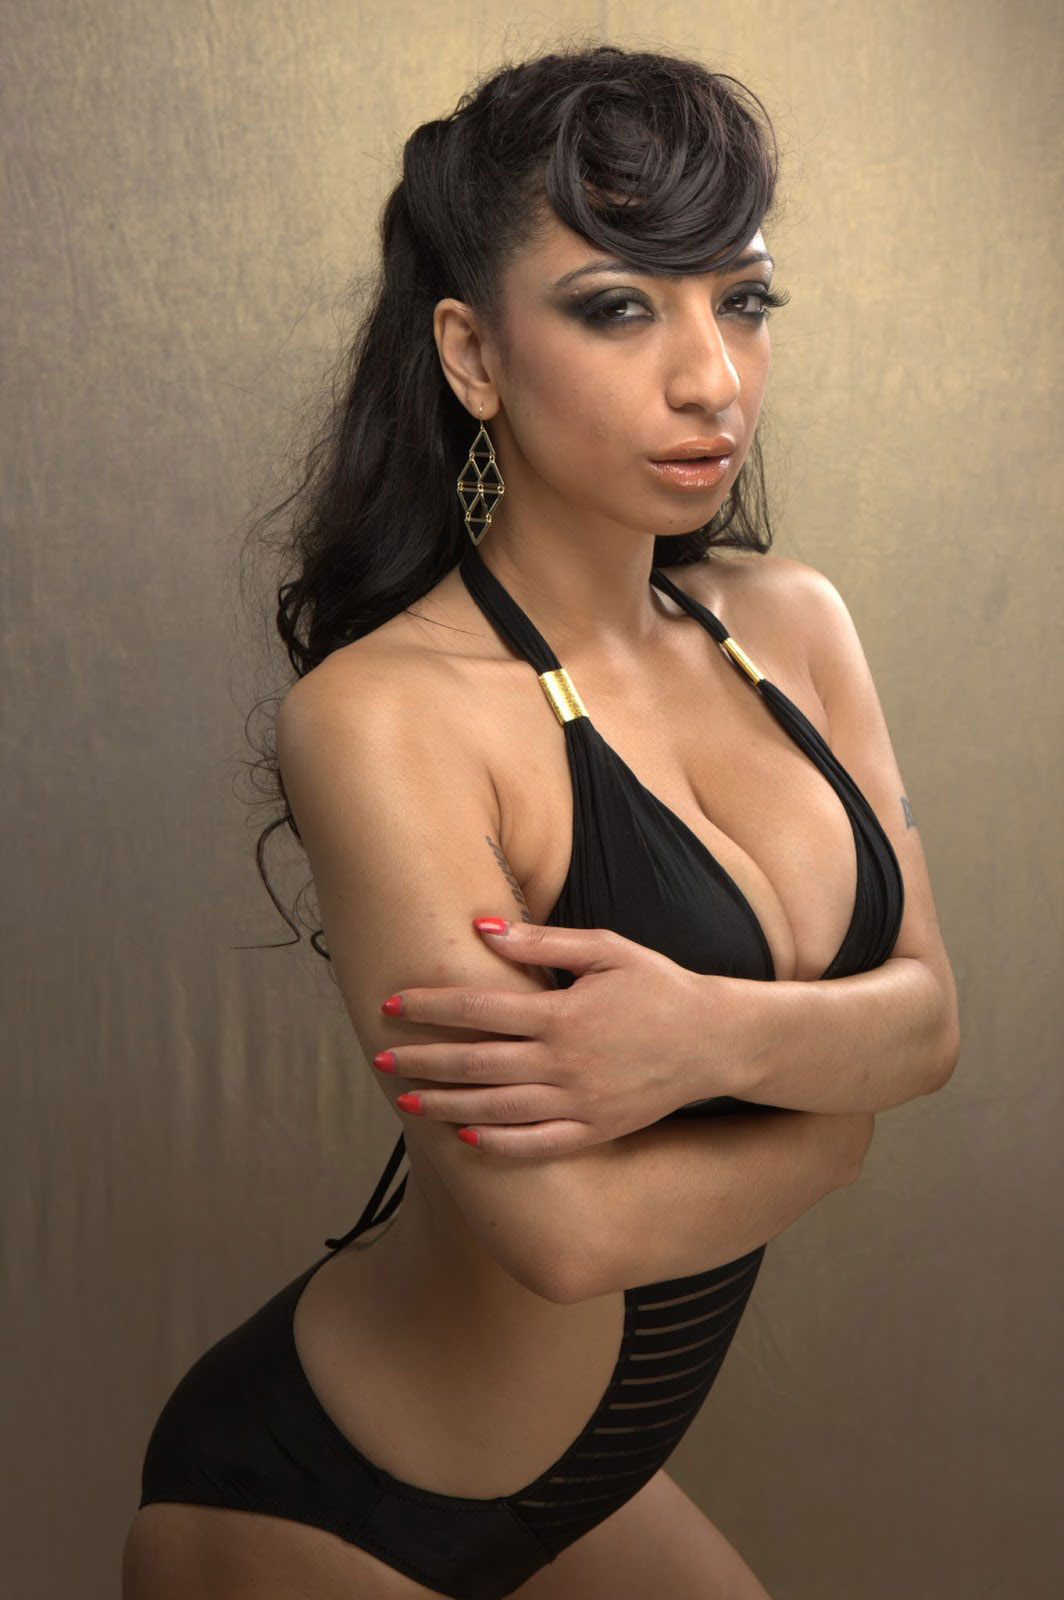 TwitPic - Official Site Shanti dynamite hot photos